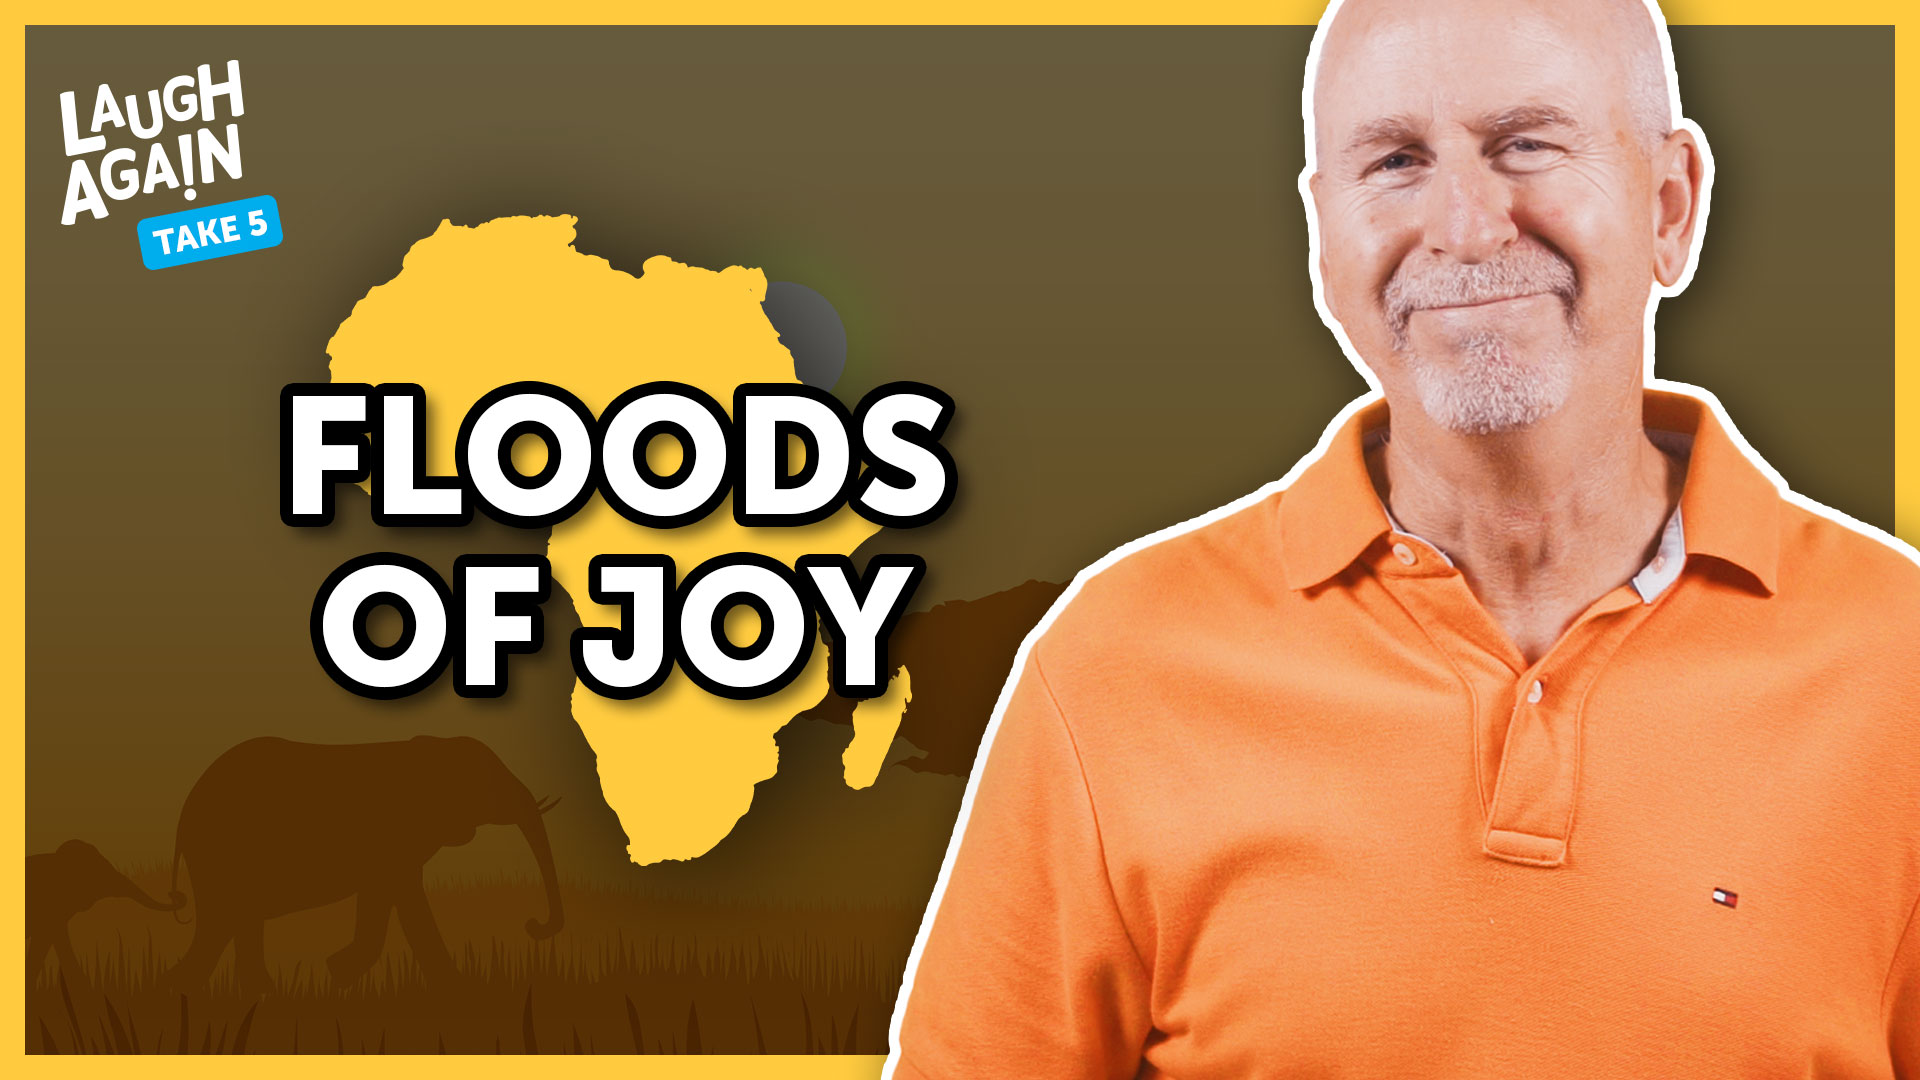 Floods of Joy | Laugh Again Take 5 with Phil Callaway